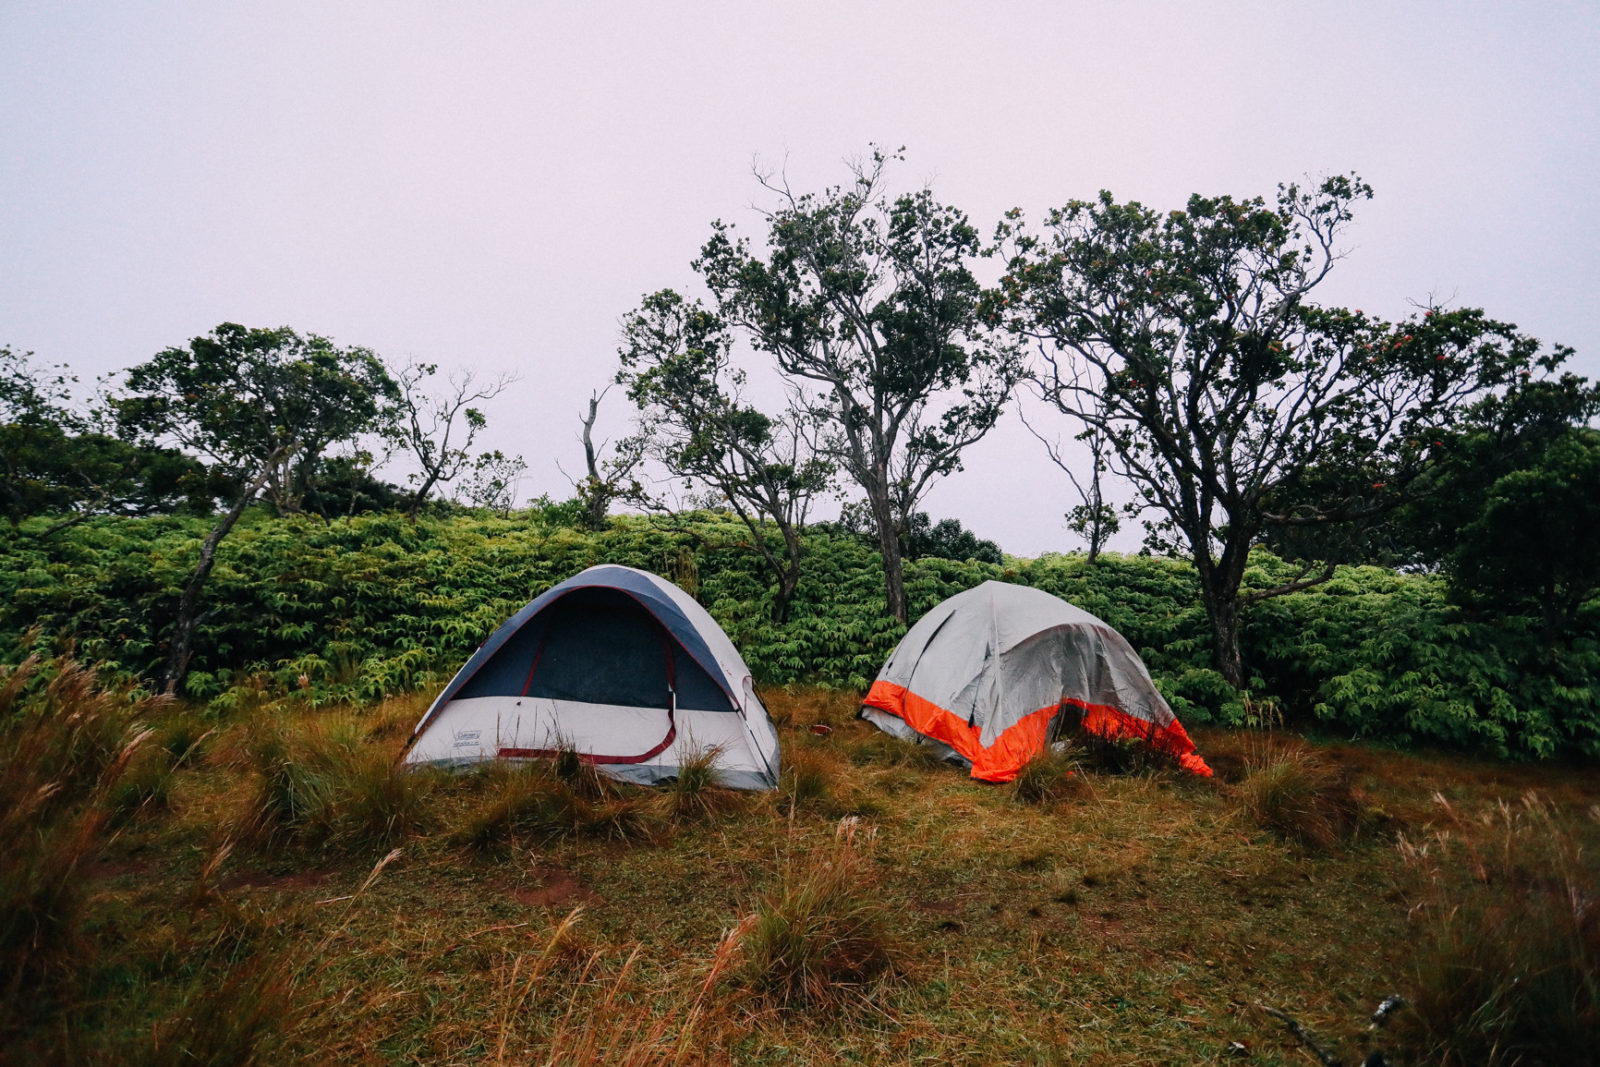 C&ing on a Cliff in Kauai & Camping on a Cliff in Kauai - Aspyn Ovard